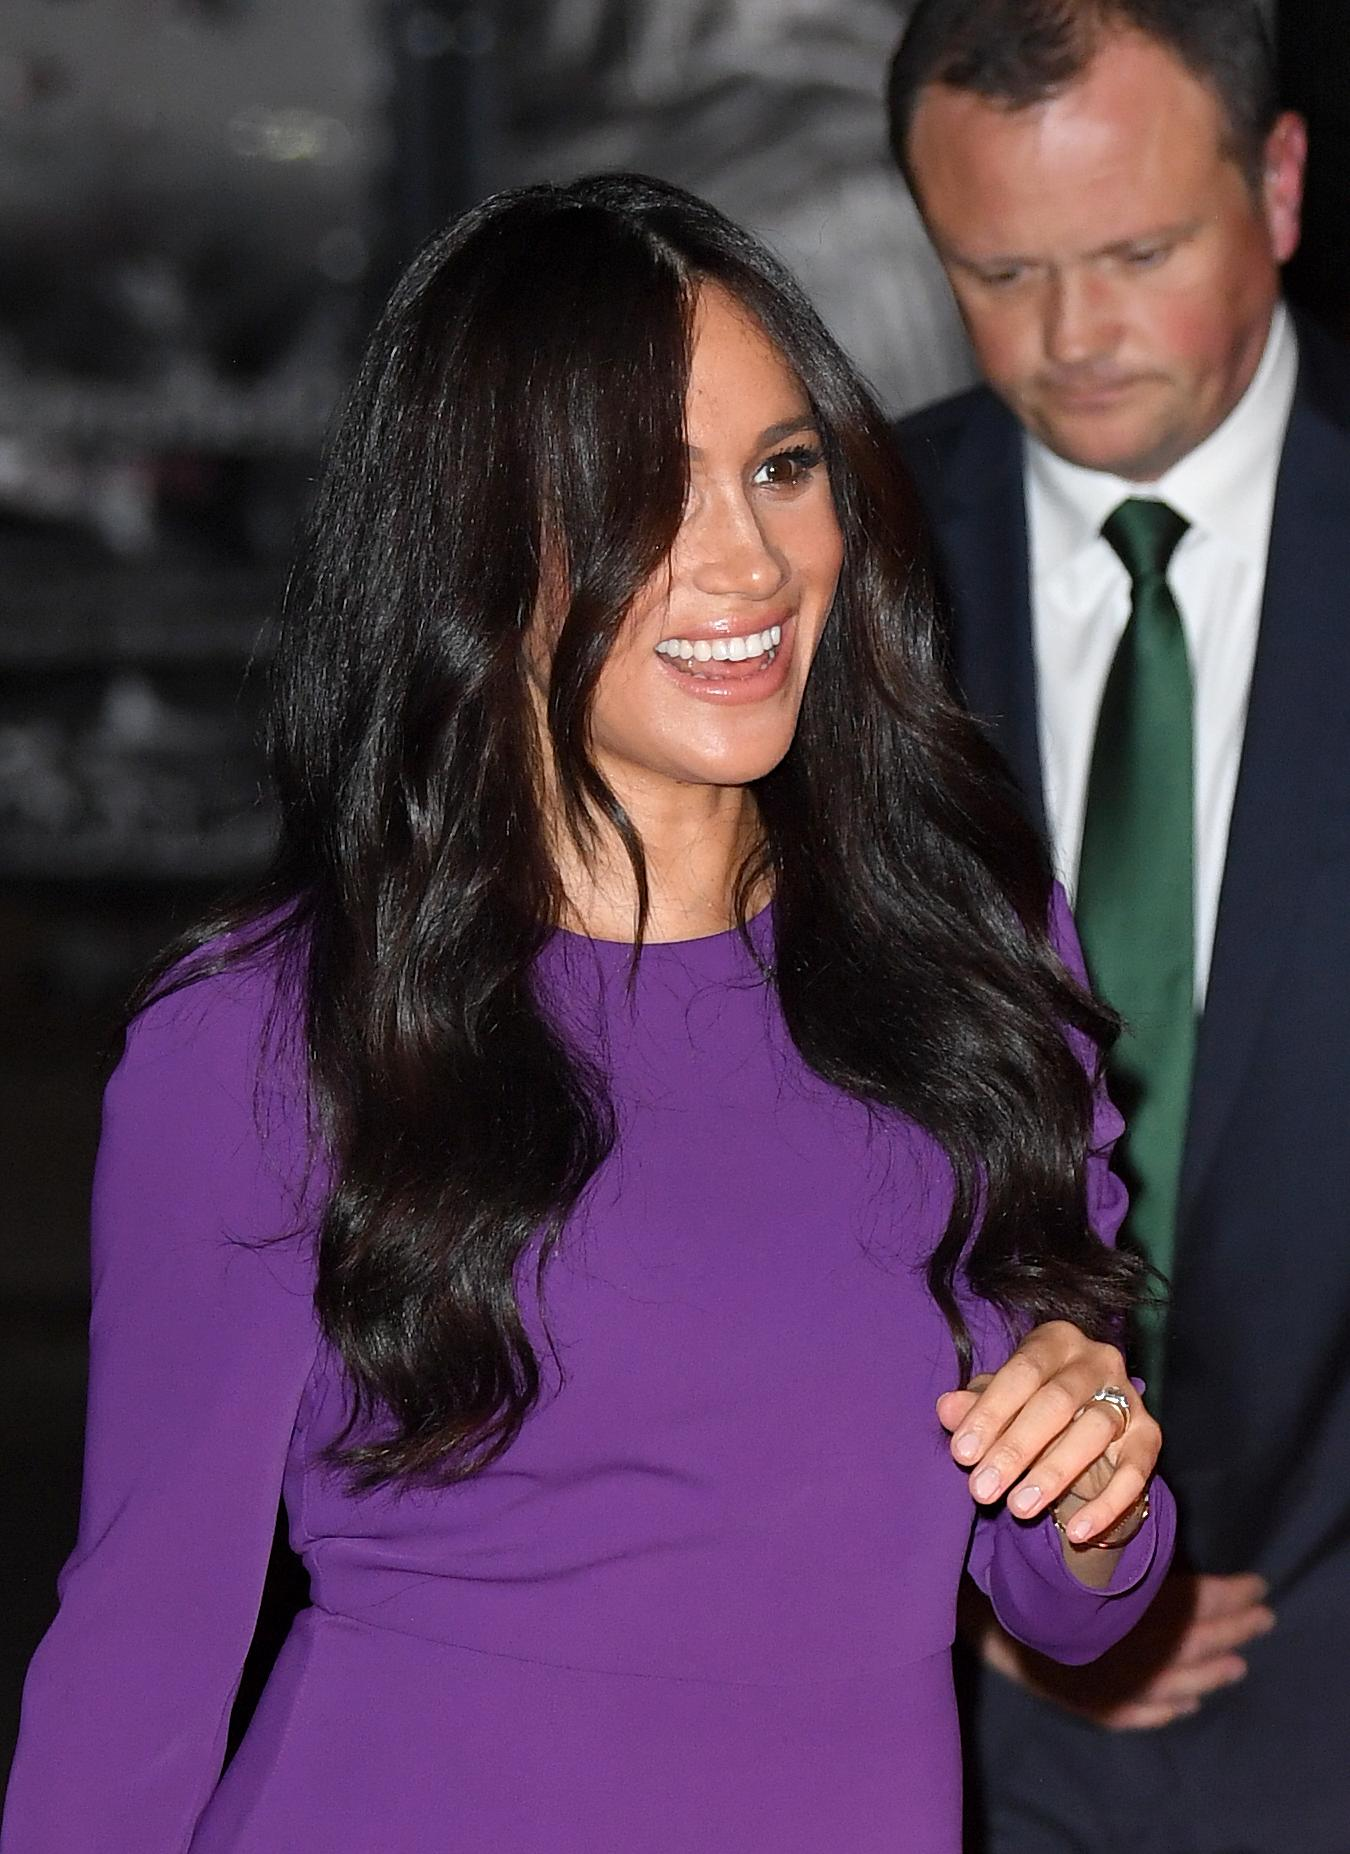 LONDON, ENGLAND - OCTOBER 22: Meghan, Duchess of Sussex attends the One Young World Summit Opening Ceremony at Royal Albert Hall on October 22, 2019 in London, England. HRH is Vice-President of The Queen's Commonwealth Trust, which is partnering with One Young World this year. (Photo by Karwai Tang/WireImage)